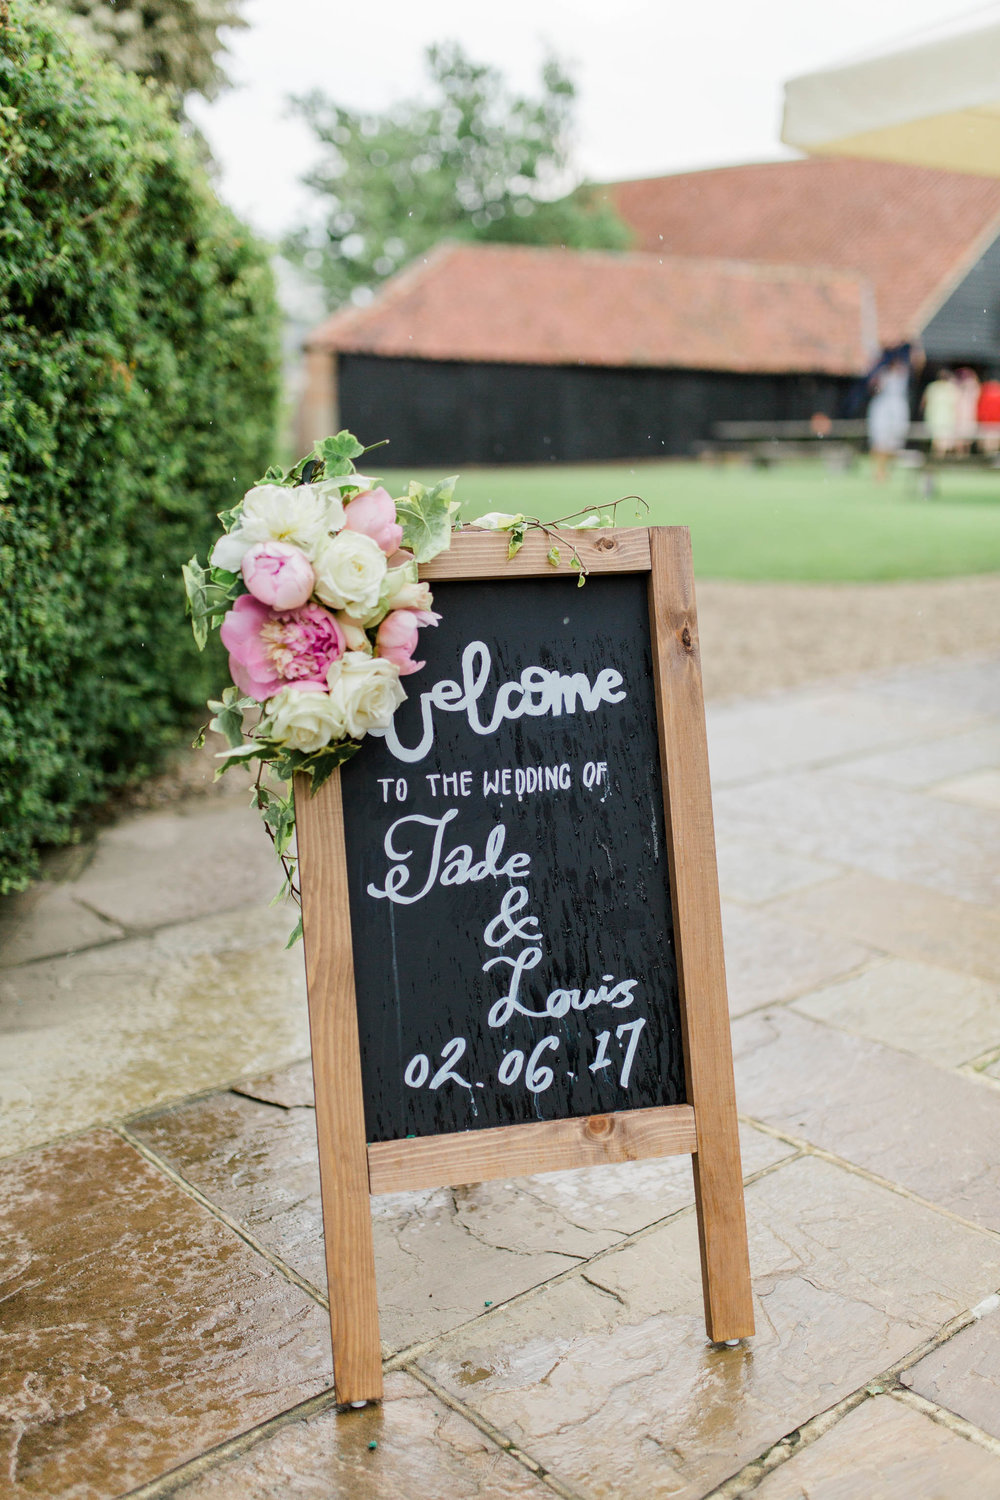 rainy wedding day welcome sign